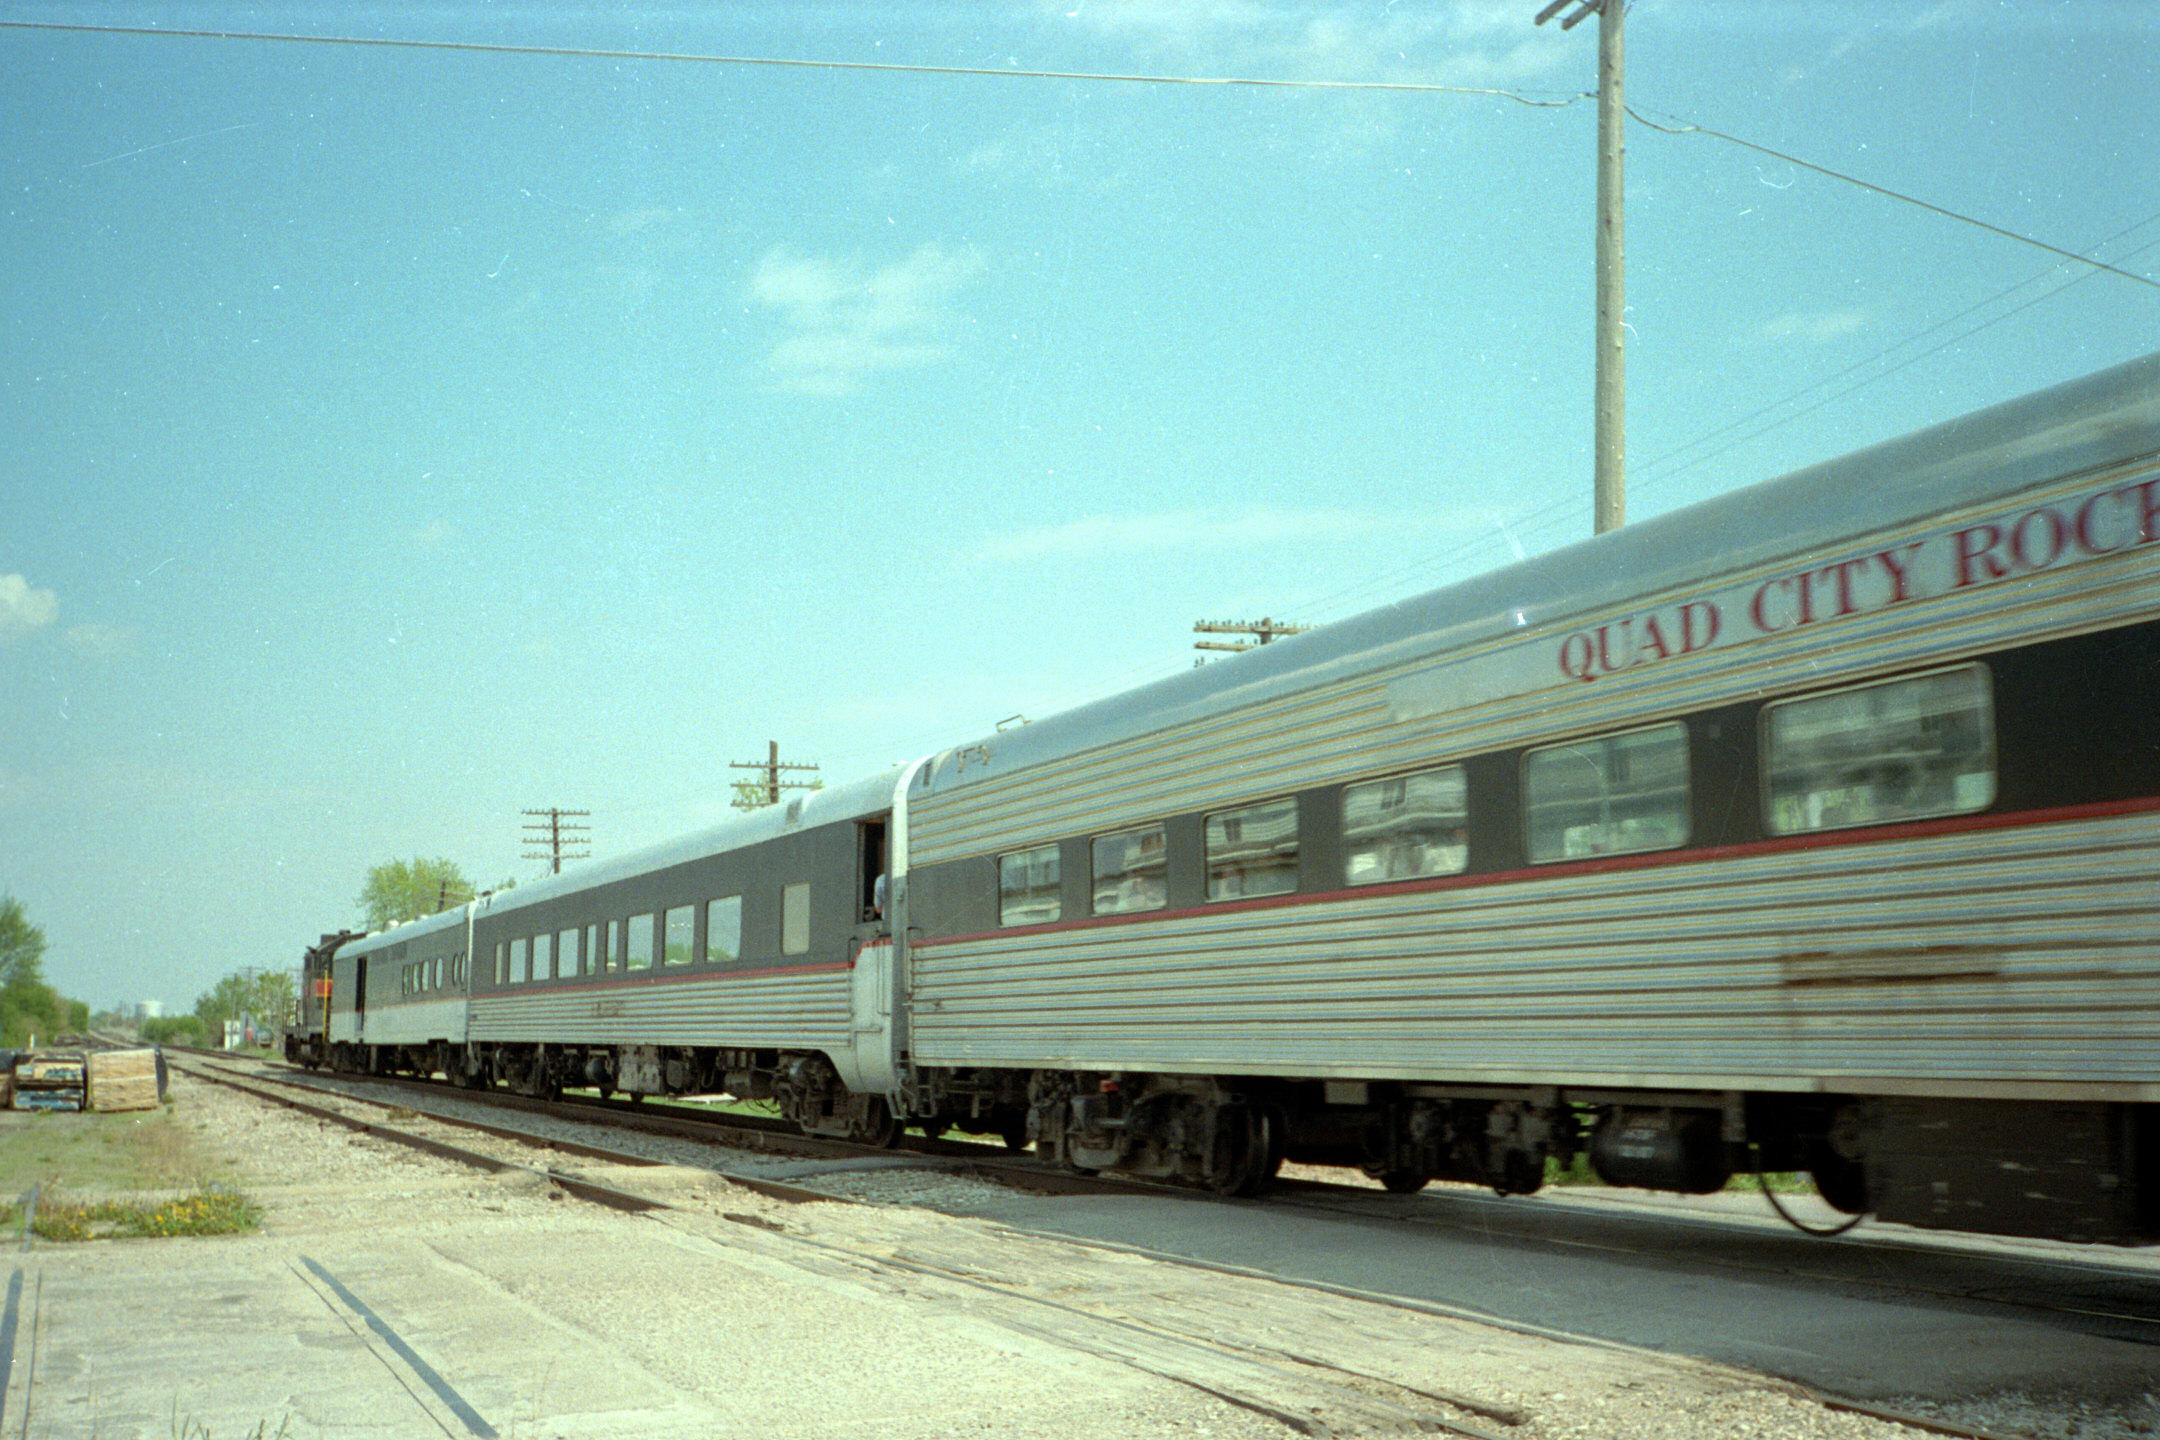 One of the Sunday runs eastbound at Walcott, IA, with 468 on the front